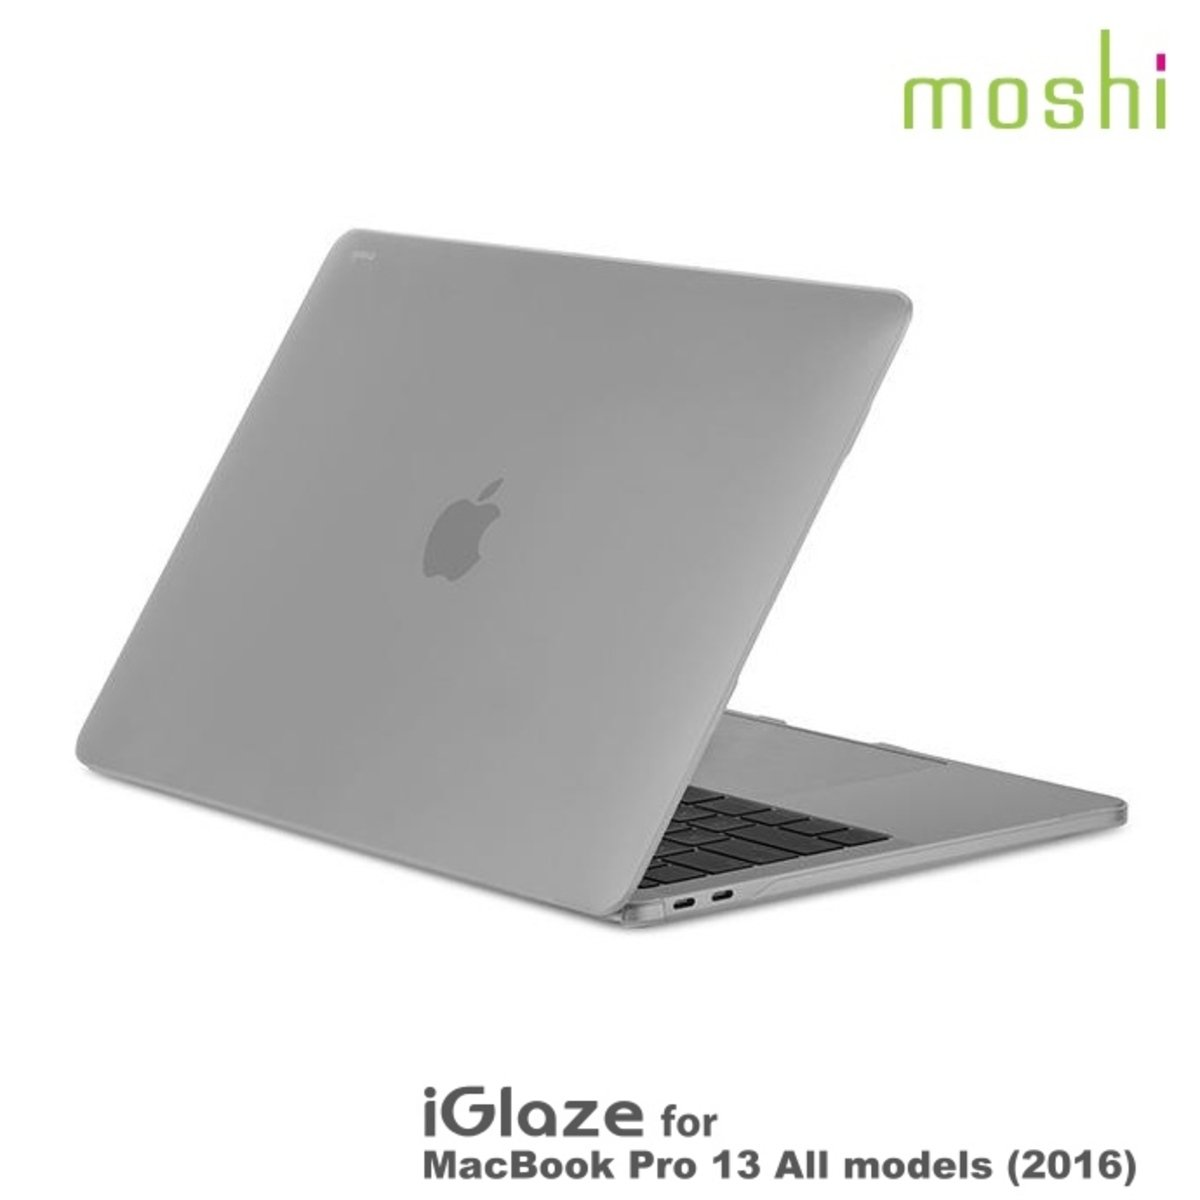 iGlaze for MacBook Pro 13 with Touch Bar